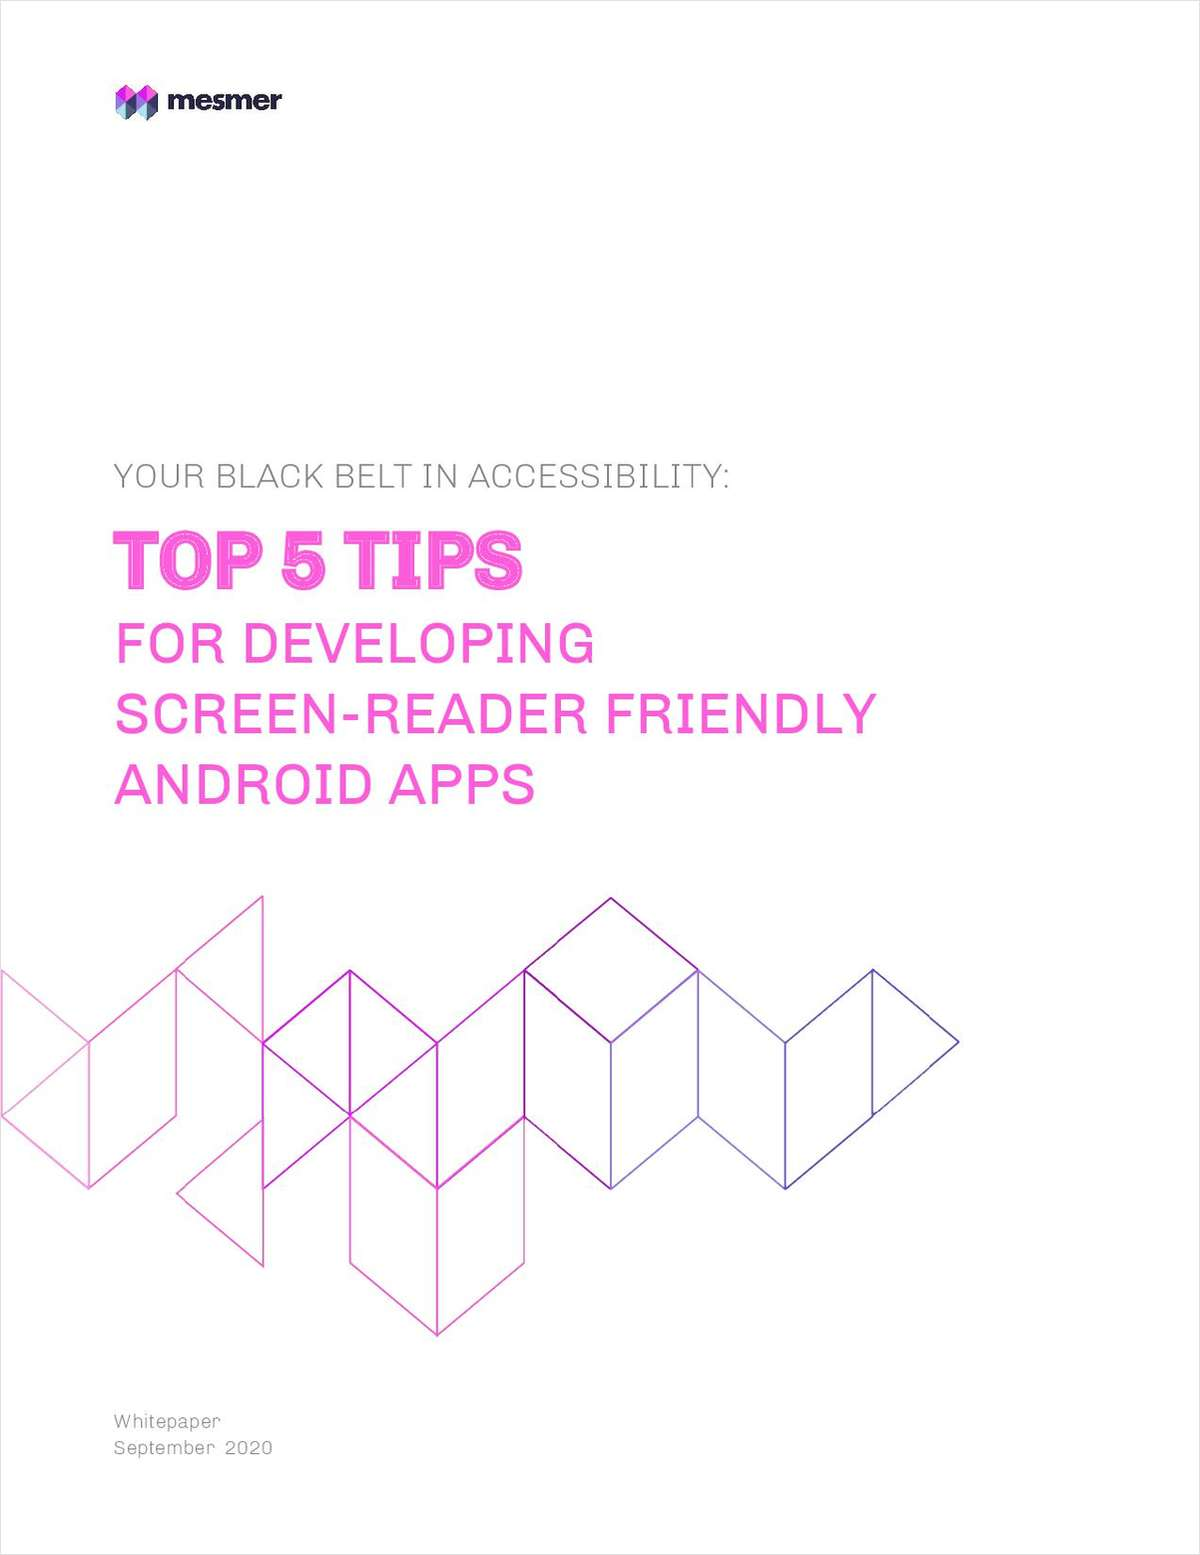 Your Black Belt in Accessibility - Top 5 Tips  for Developing Screen-Reader Friendly Android Apps